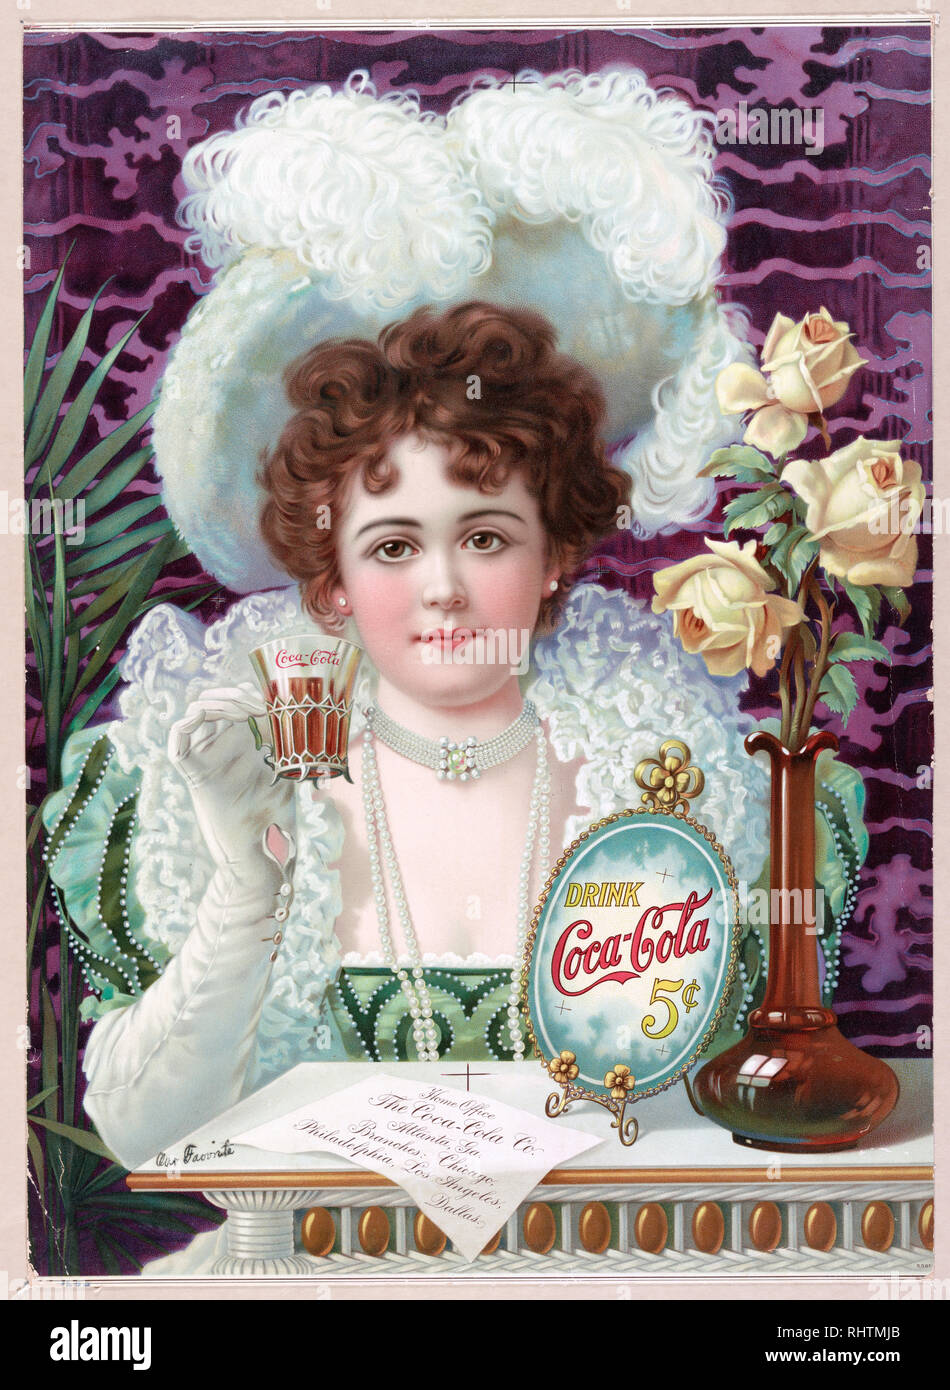 Print shows a well dressed young woman, wearing hat, white gloves, and pearls, holding up a glass of Coca-Cola, seated at a table on which is a vase of roses, the 'Drink Coca-Cola' sign, and a paper giving the location of the 'Home Office [of the] Coca-Cola Co.' as well as branch locations. - Stock Image